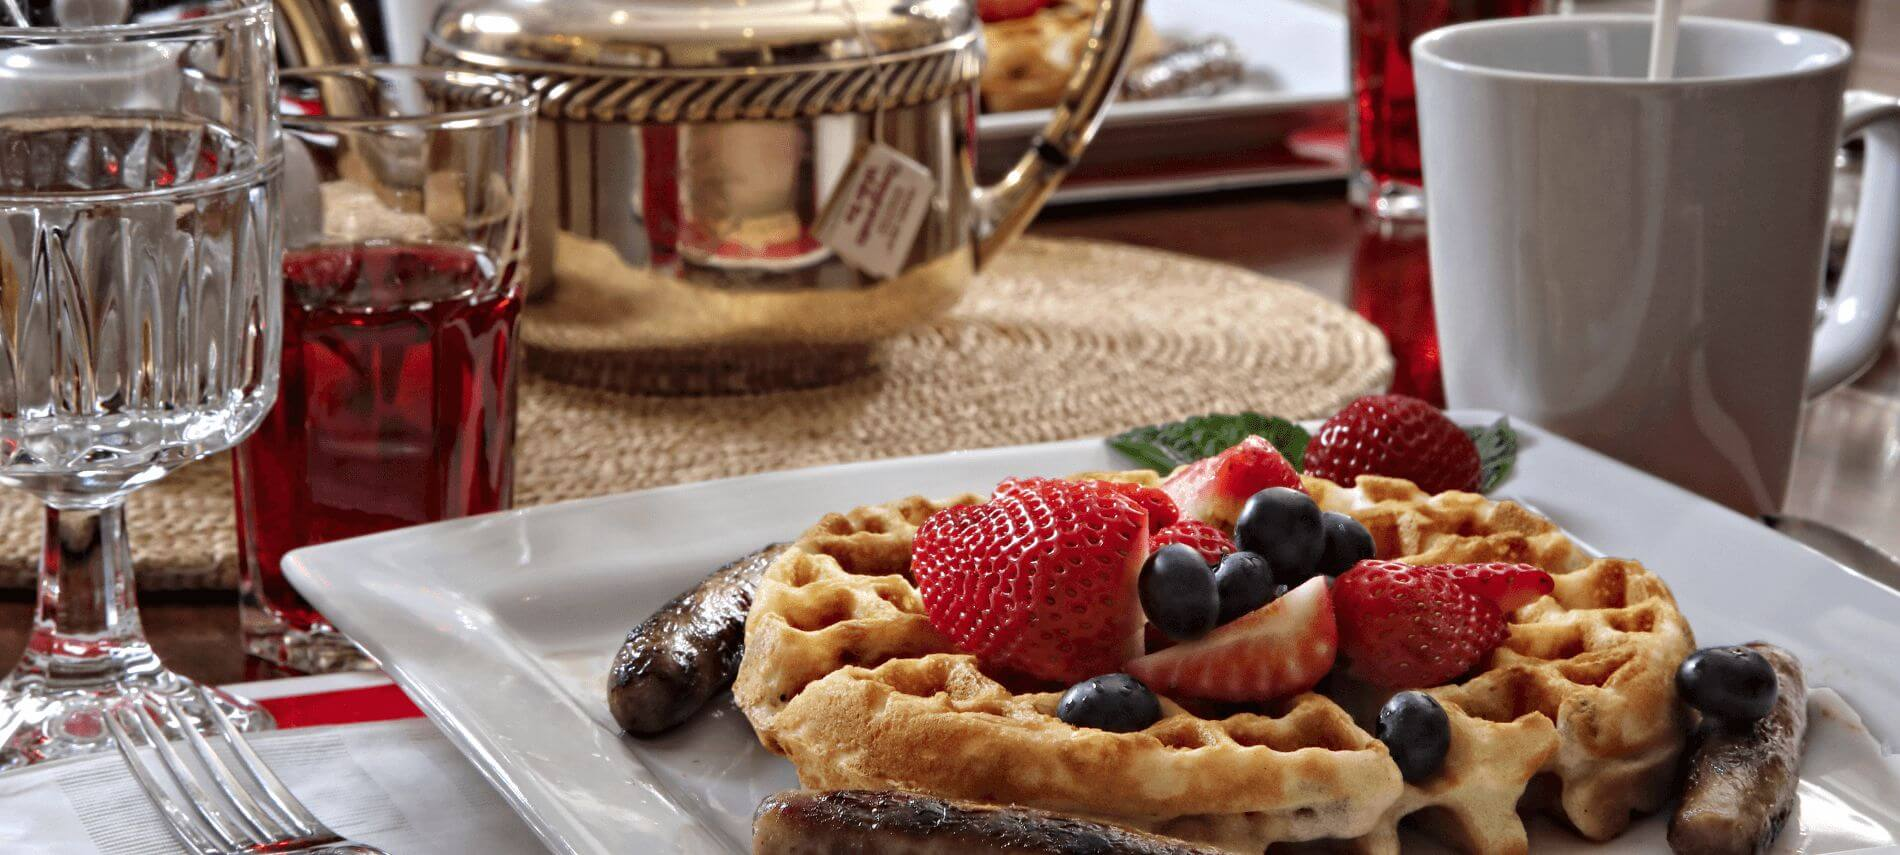 Waffles with fruit on a white plate next to a silver tea pot